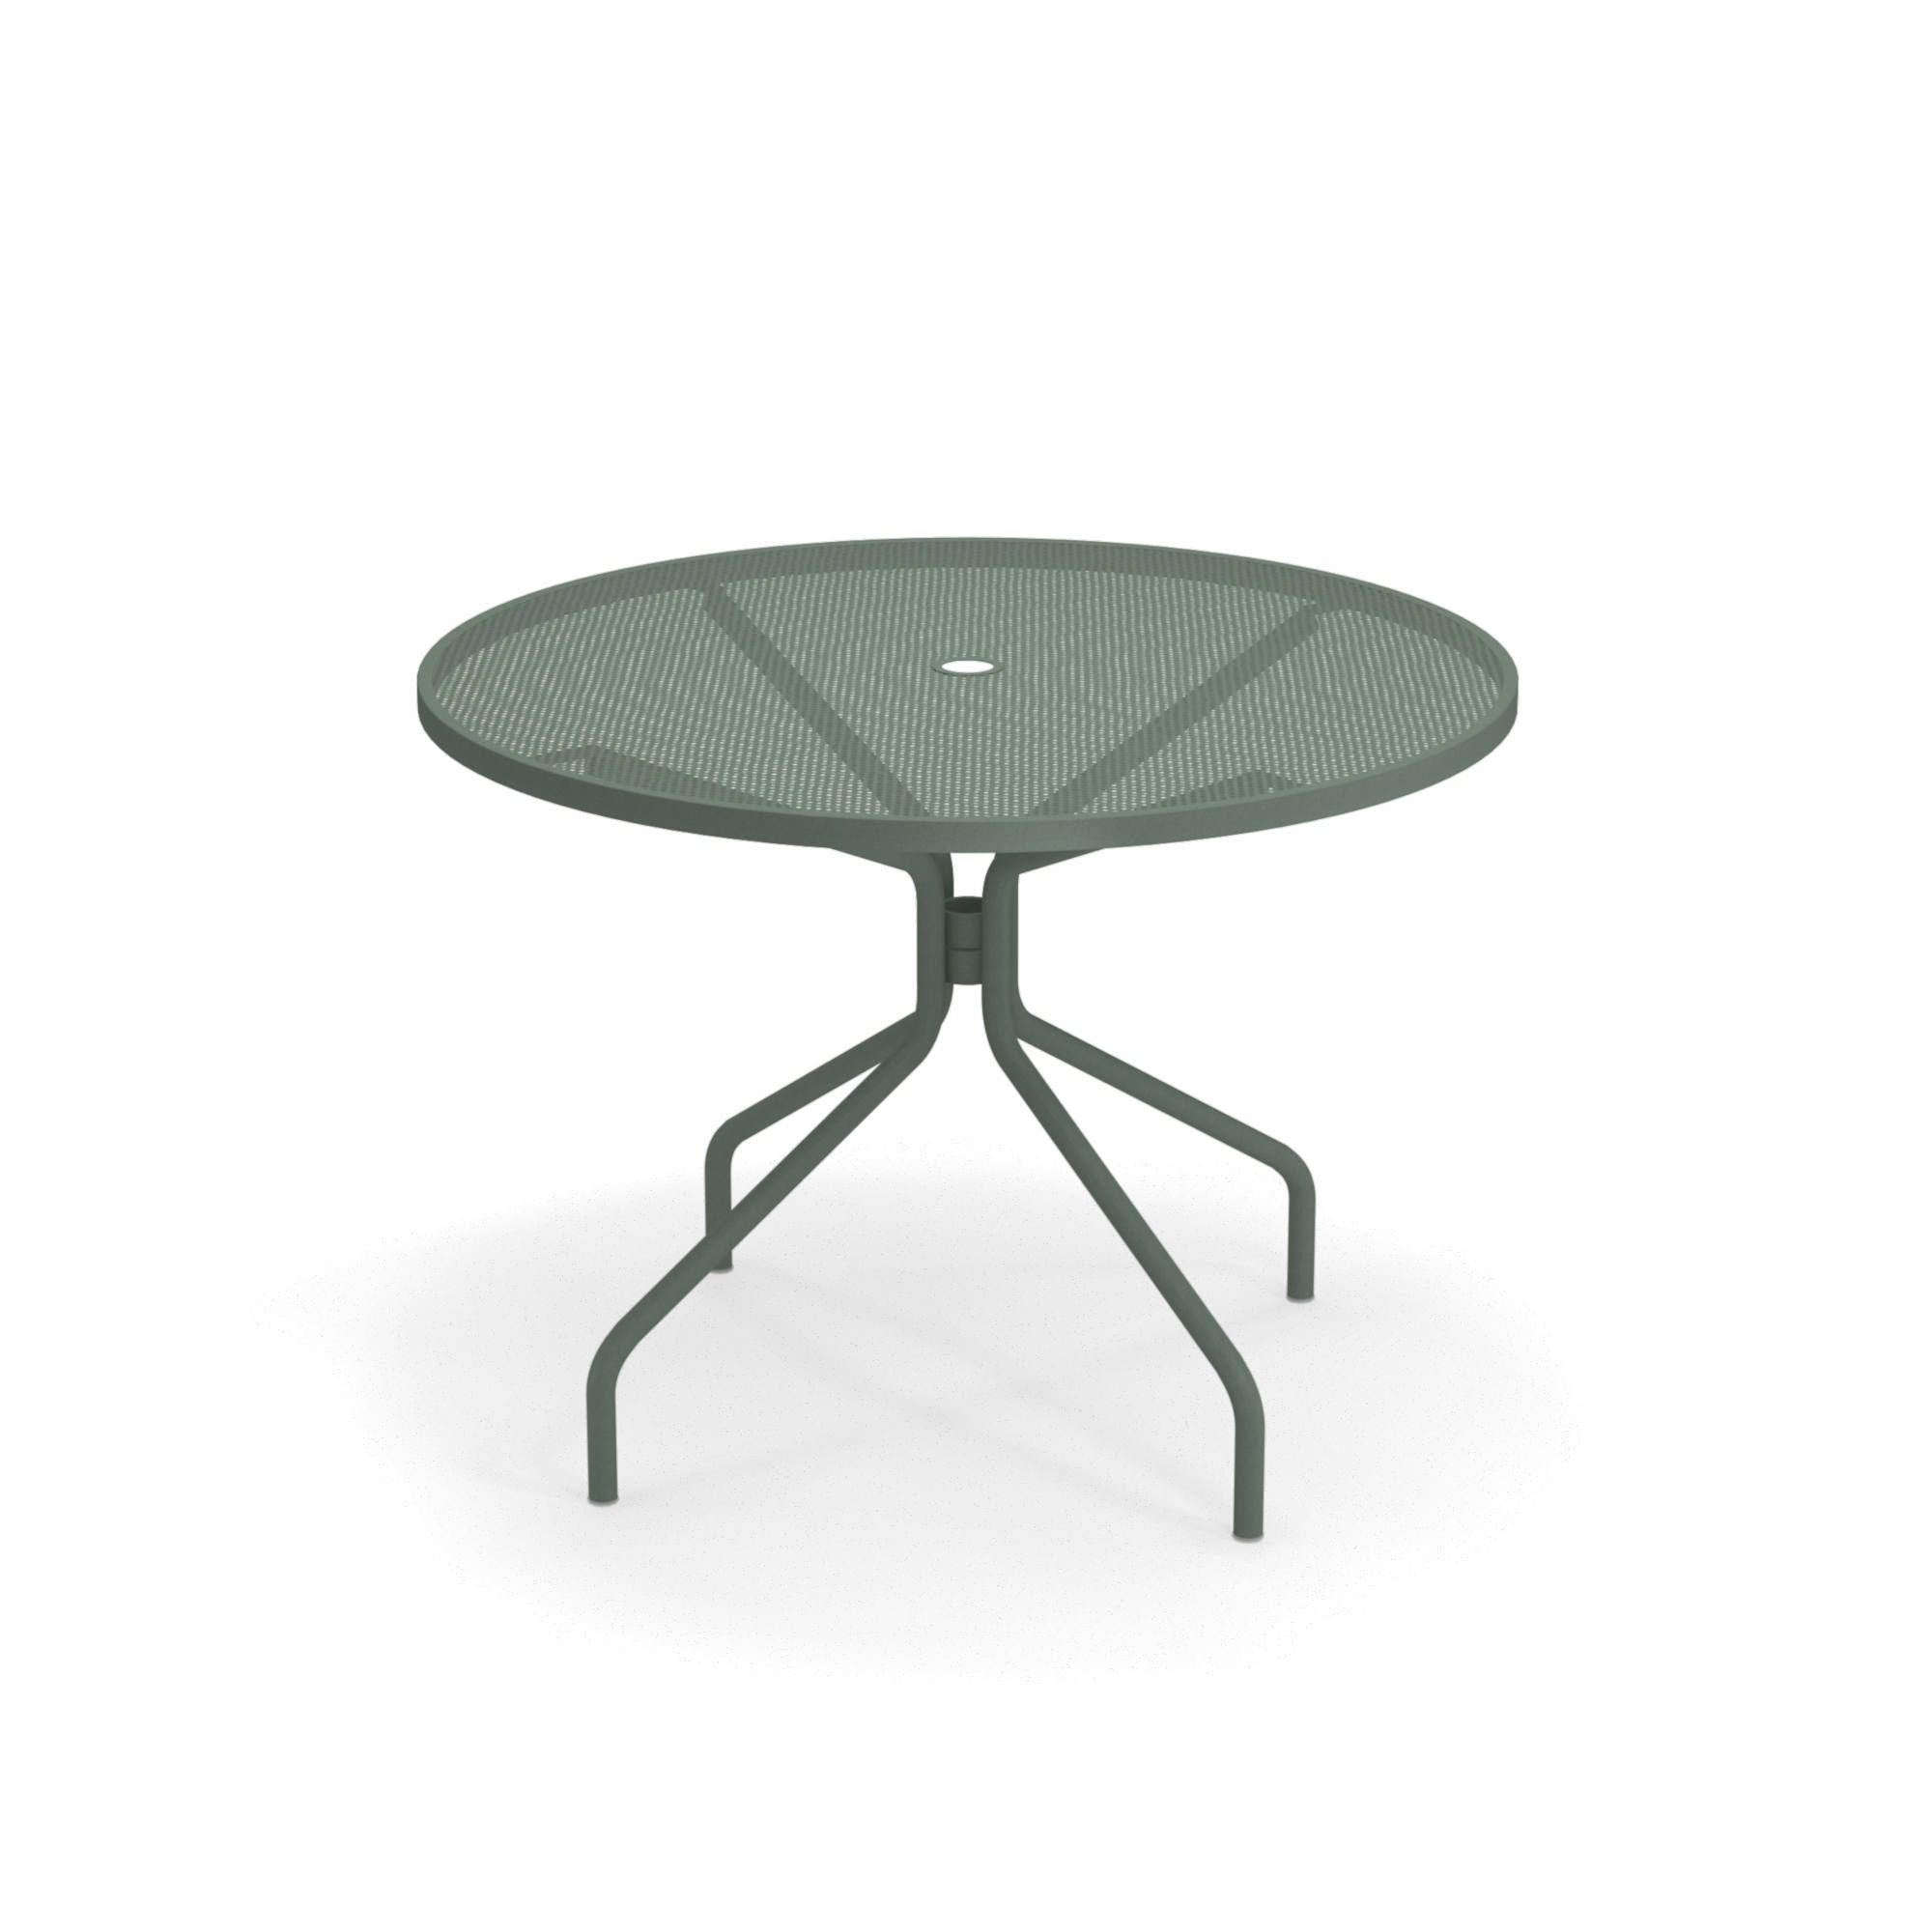 emuamericas, llc 804-75 table, outdoor